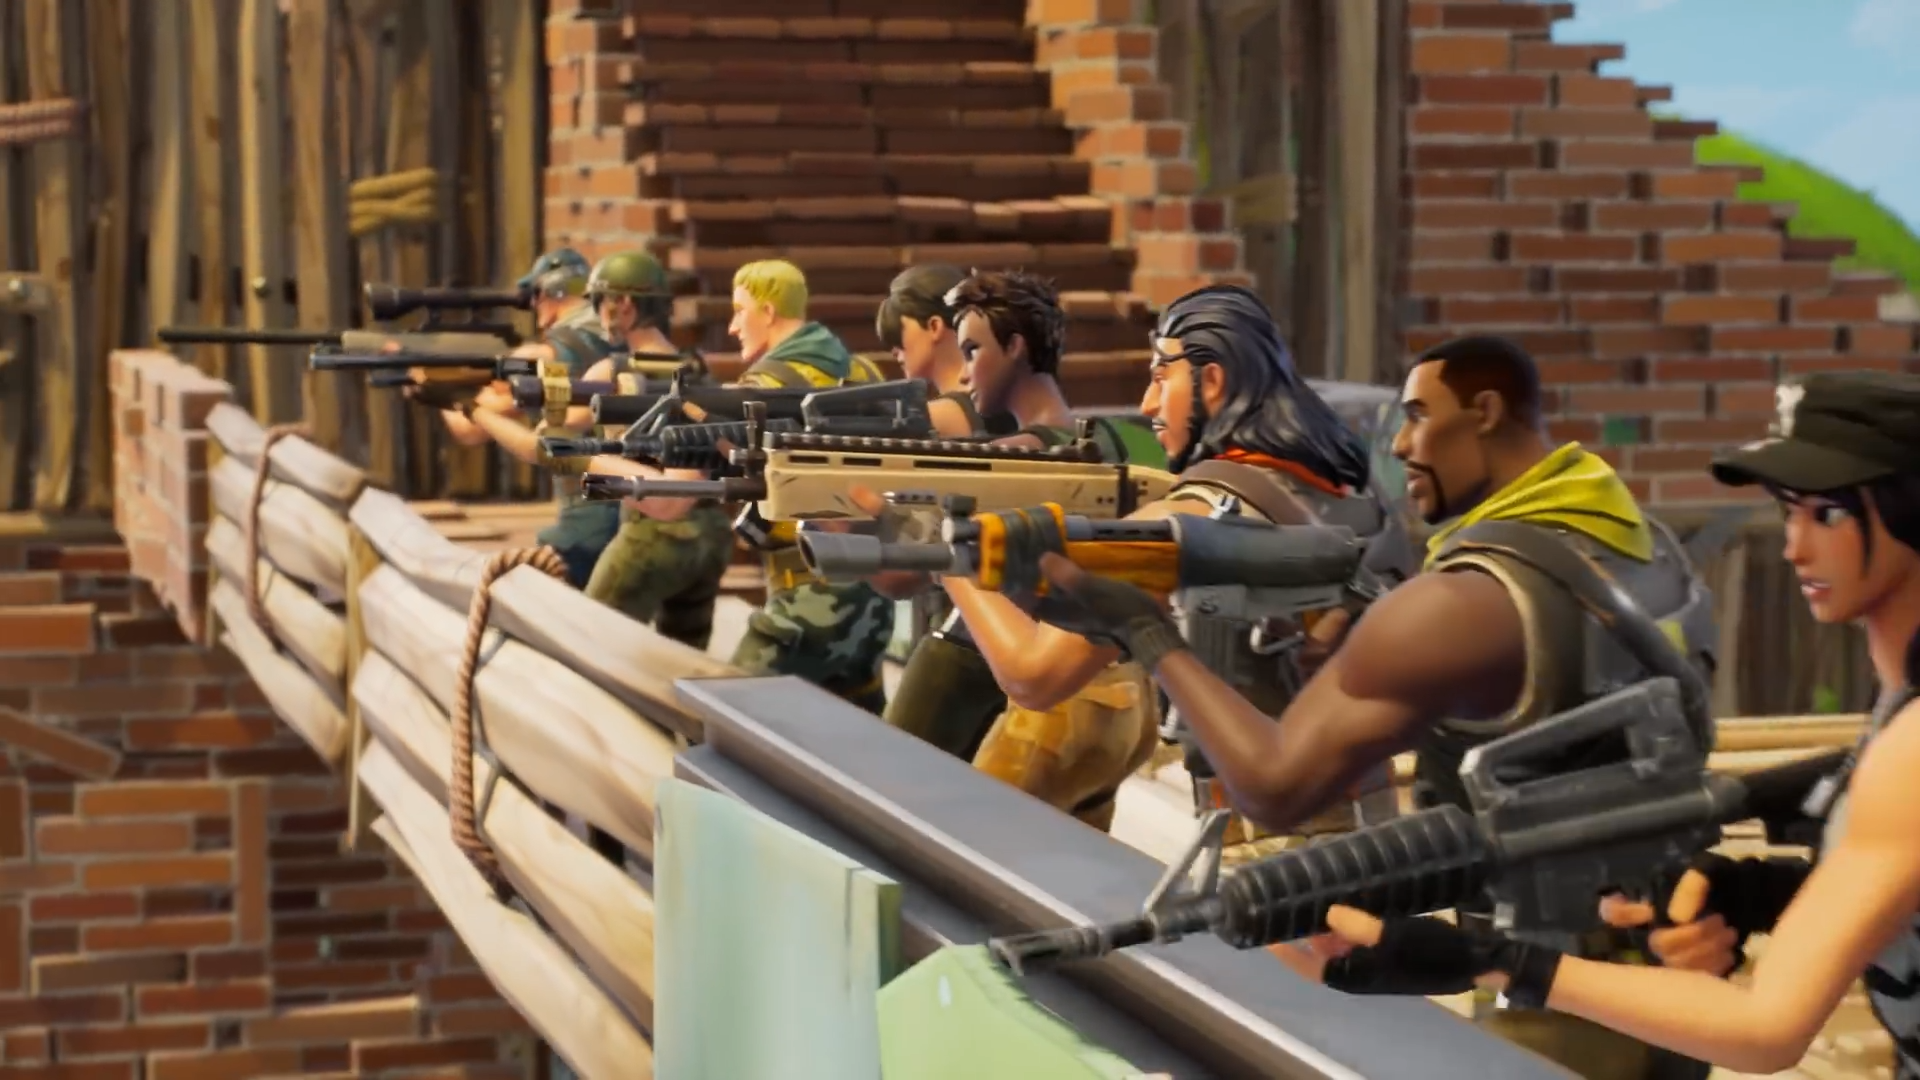 Fortnite Patchnotes 2.4 Fortnite Update 2 4 0 S Patch Notes Include A Minigun For Battle Royale Gamespot